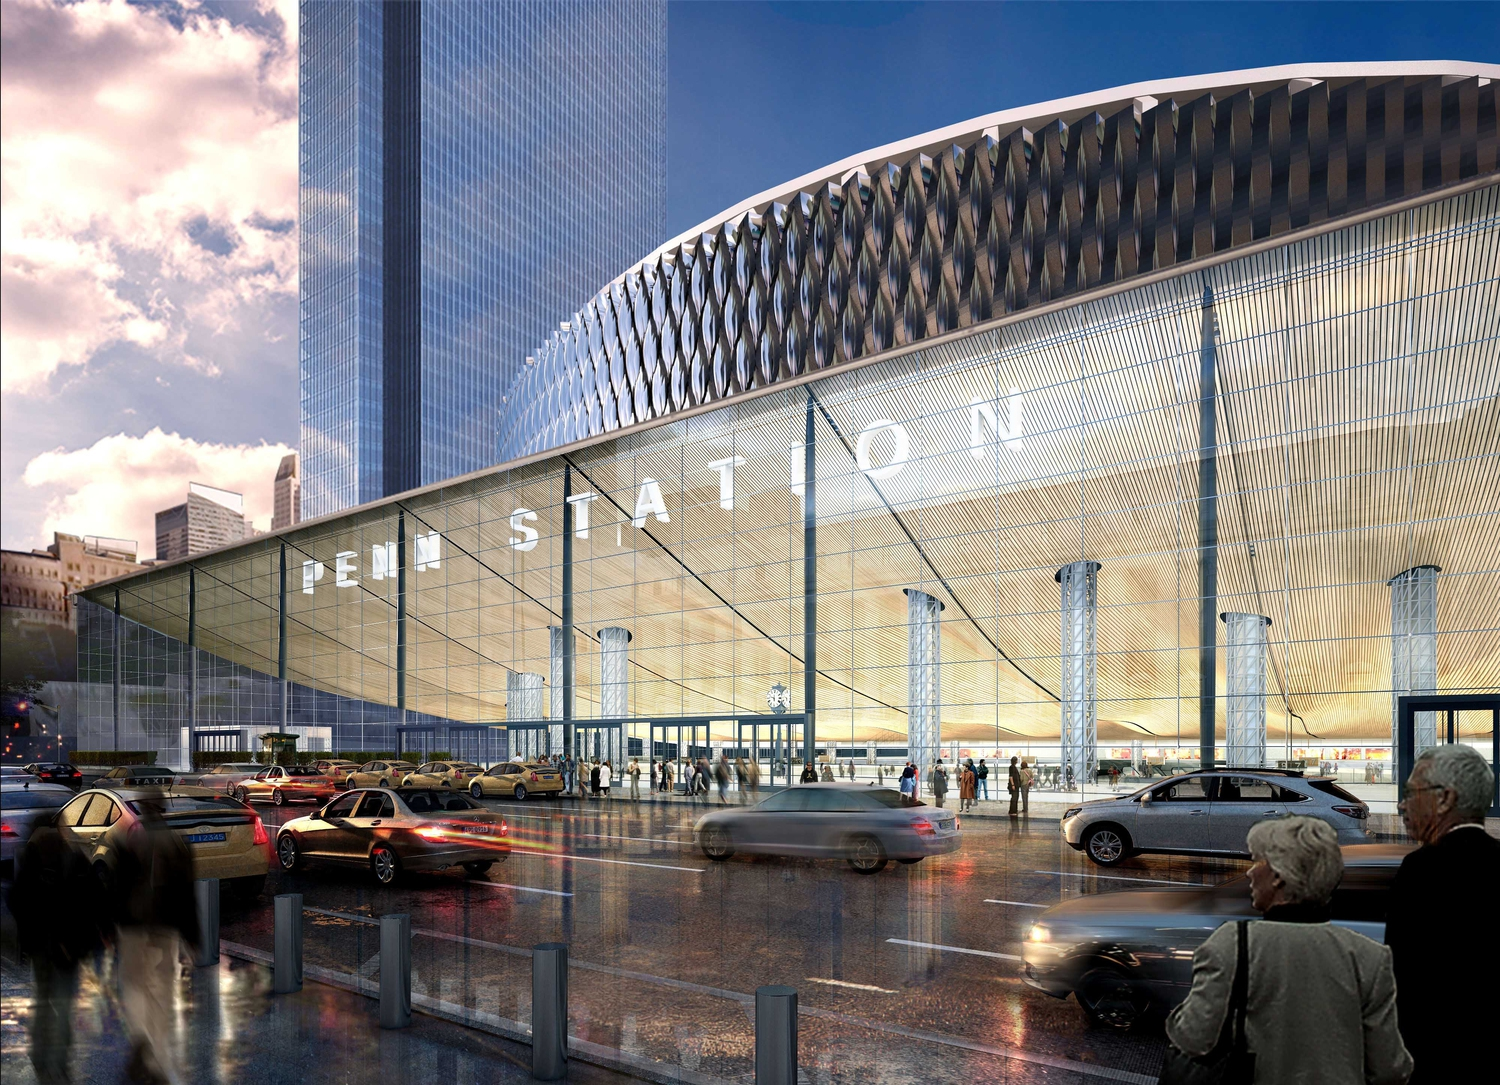 Redeveloped Penn Station Exterior: View from 8th Avenue | A friendly, negotiated condemnation and removal of the MSG Paramount Theater, creating the opportunity to construct an 8th Avenue grand entrance with concourse, retail and commercial space.